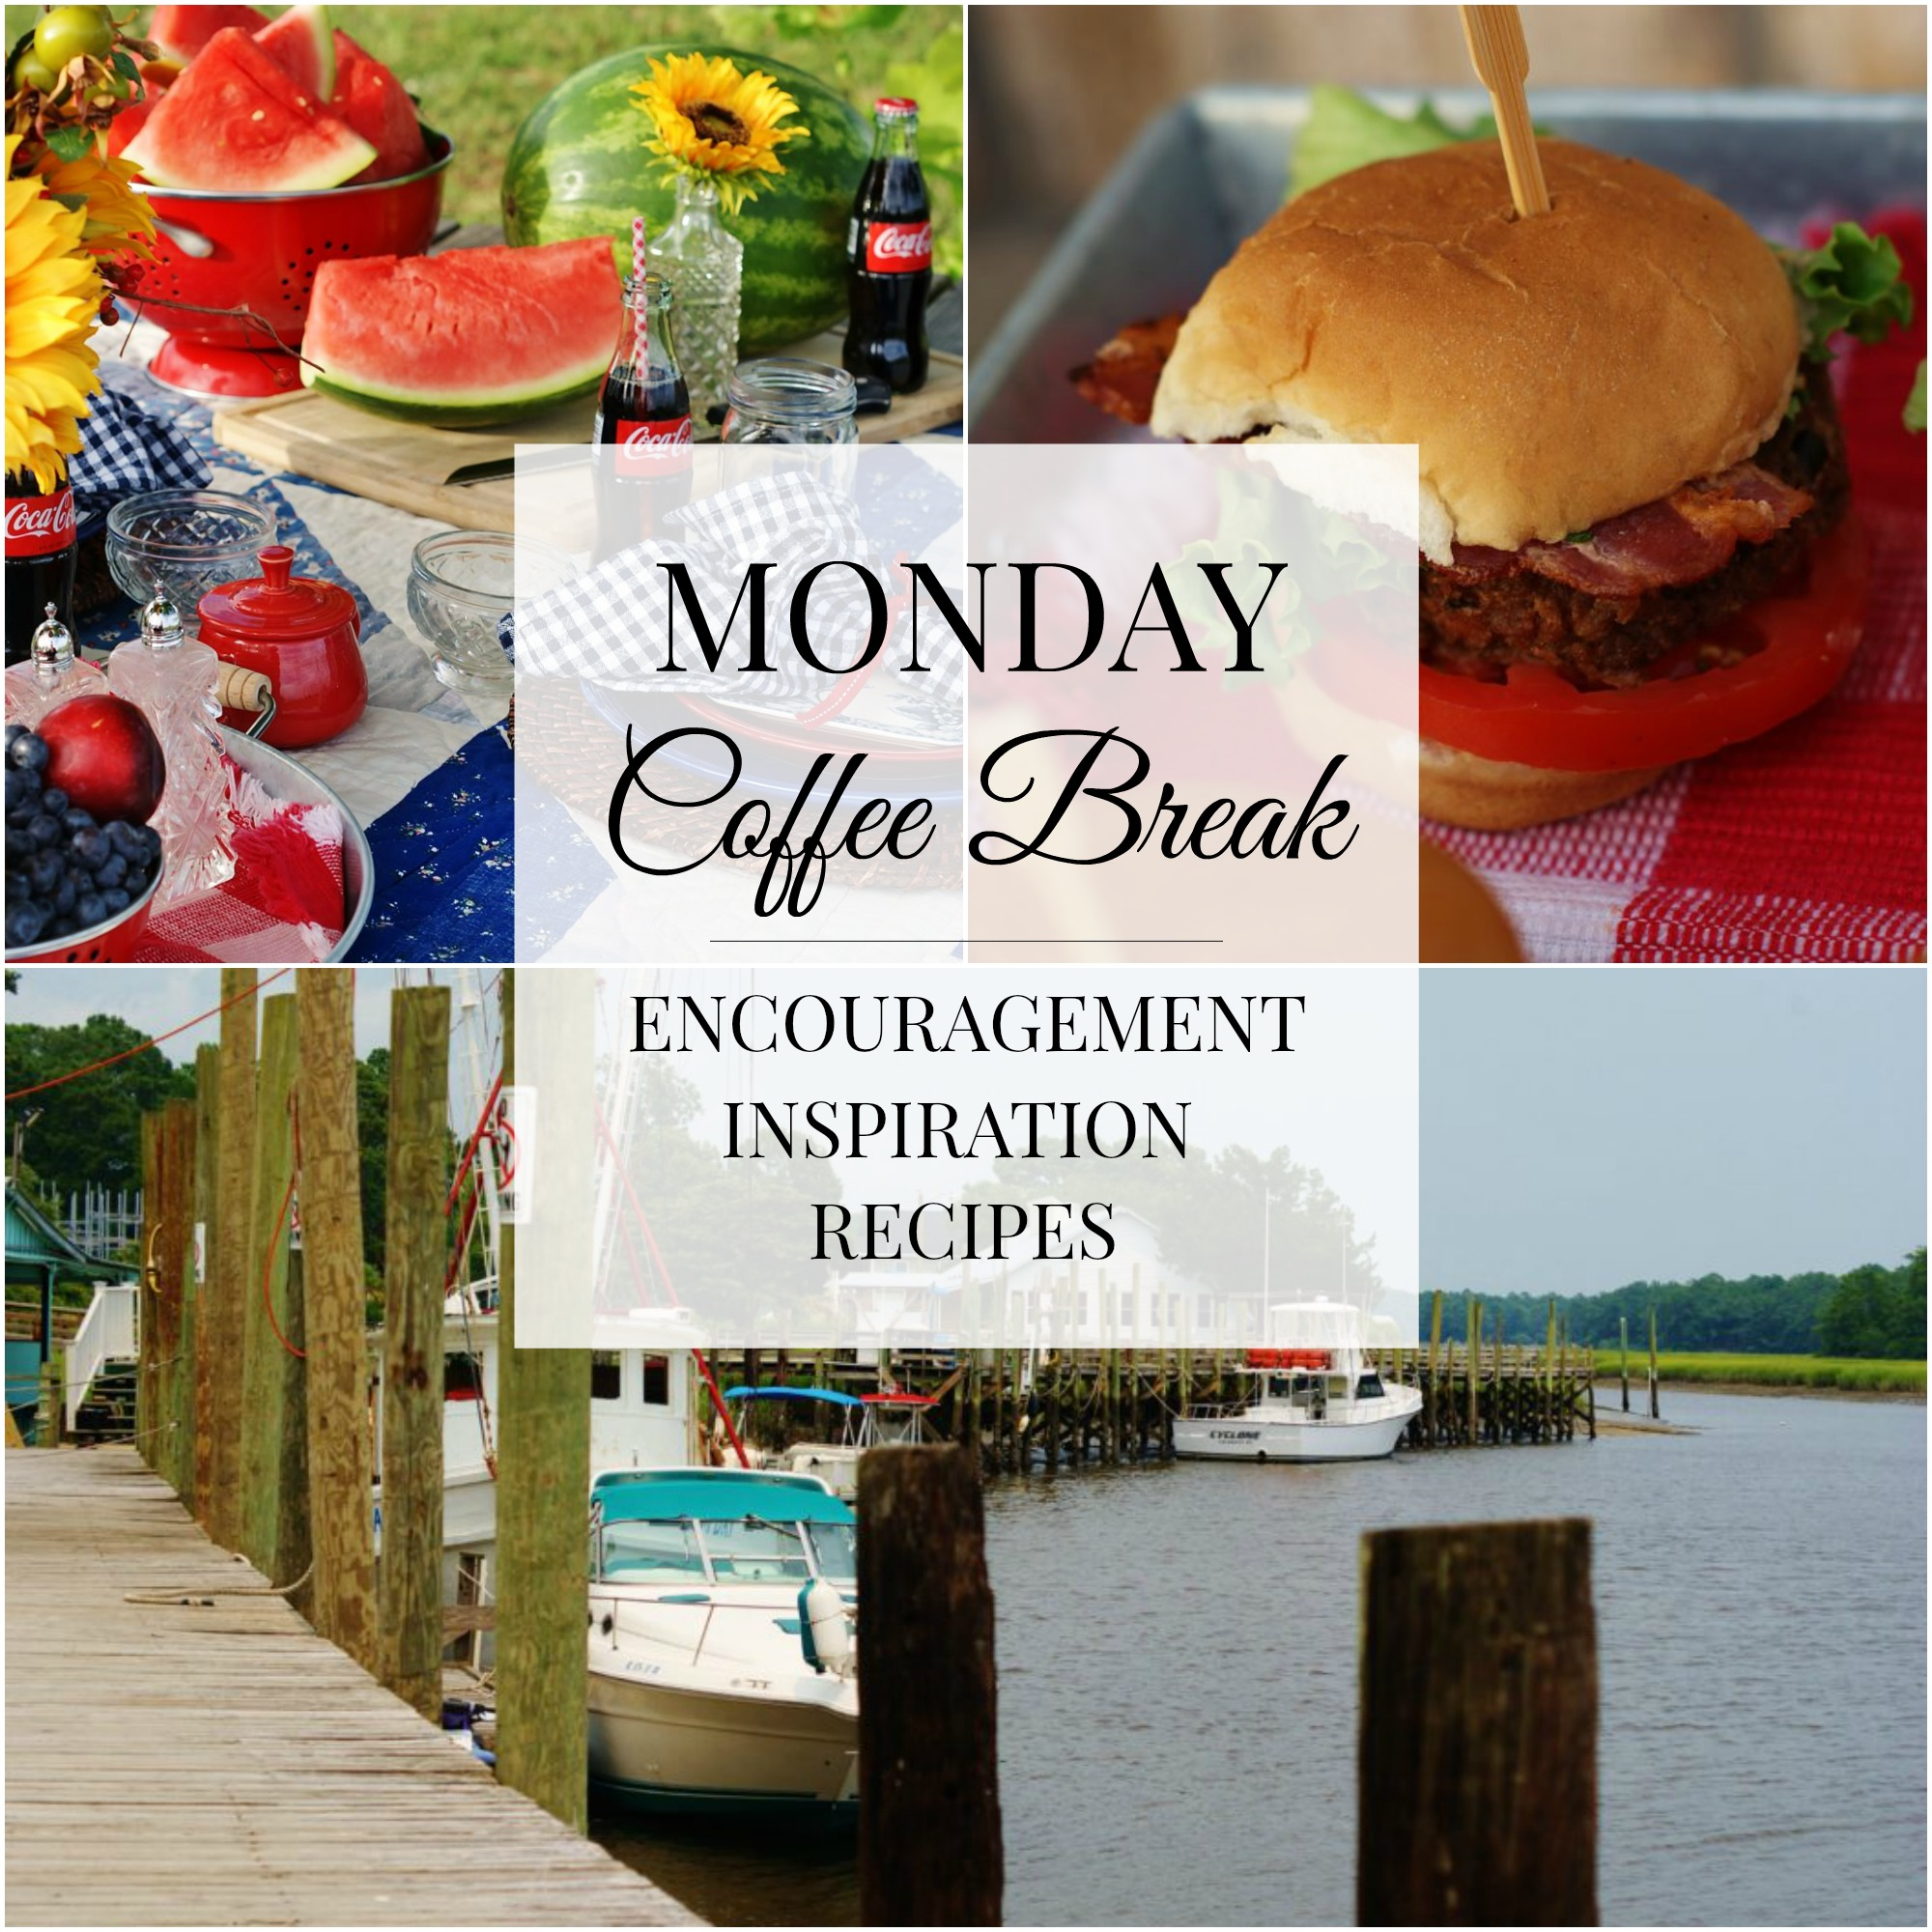 The title collage of crab cakes, July 4th picnic and Calabash, North Carolina for Monday Coffee Break #42.